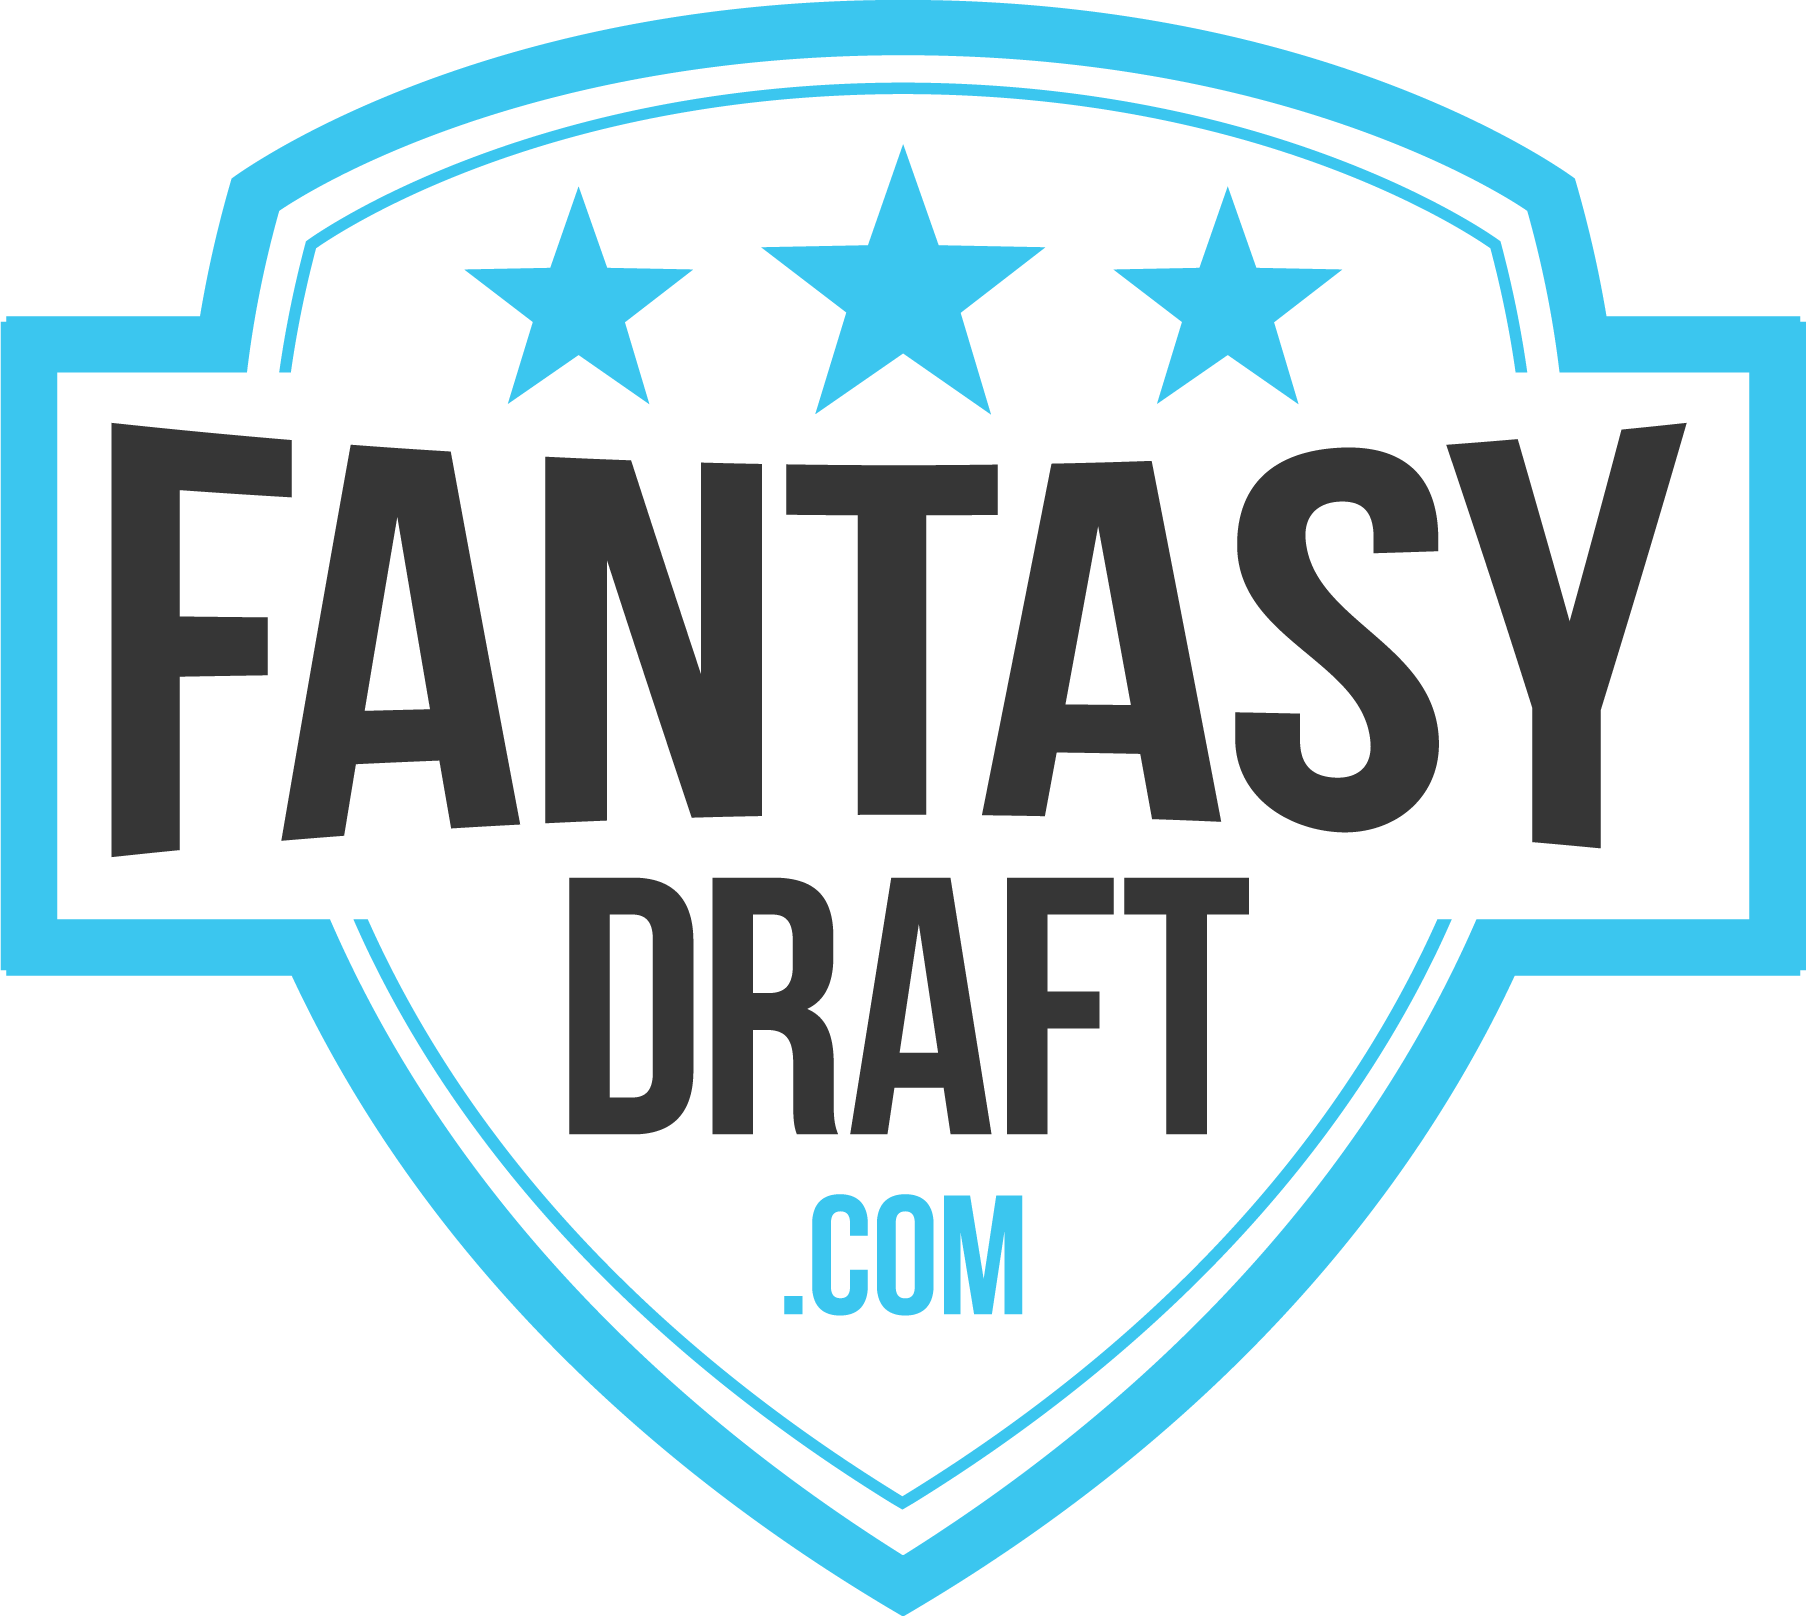 Play An NFL 50/50 Contest this Weekend with Us! FantasyDraft offers Lower Multi-Entry Caps keep the sharks at bay with a larger PayoutZone means 25% of users win cash in featured contests and Flexible Lineup structures which allow you to choose more of your favorite players.